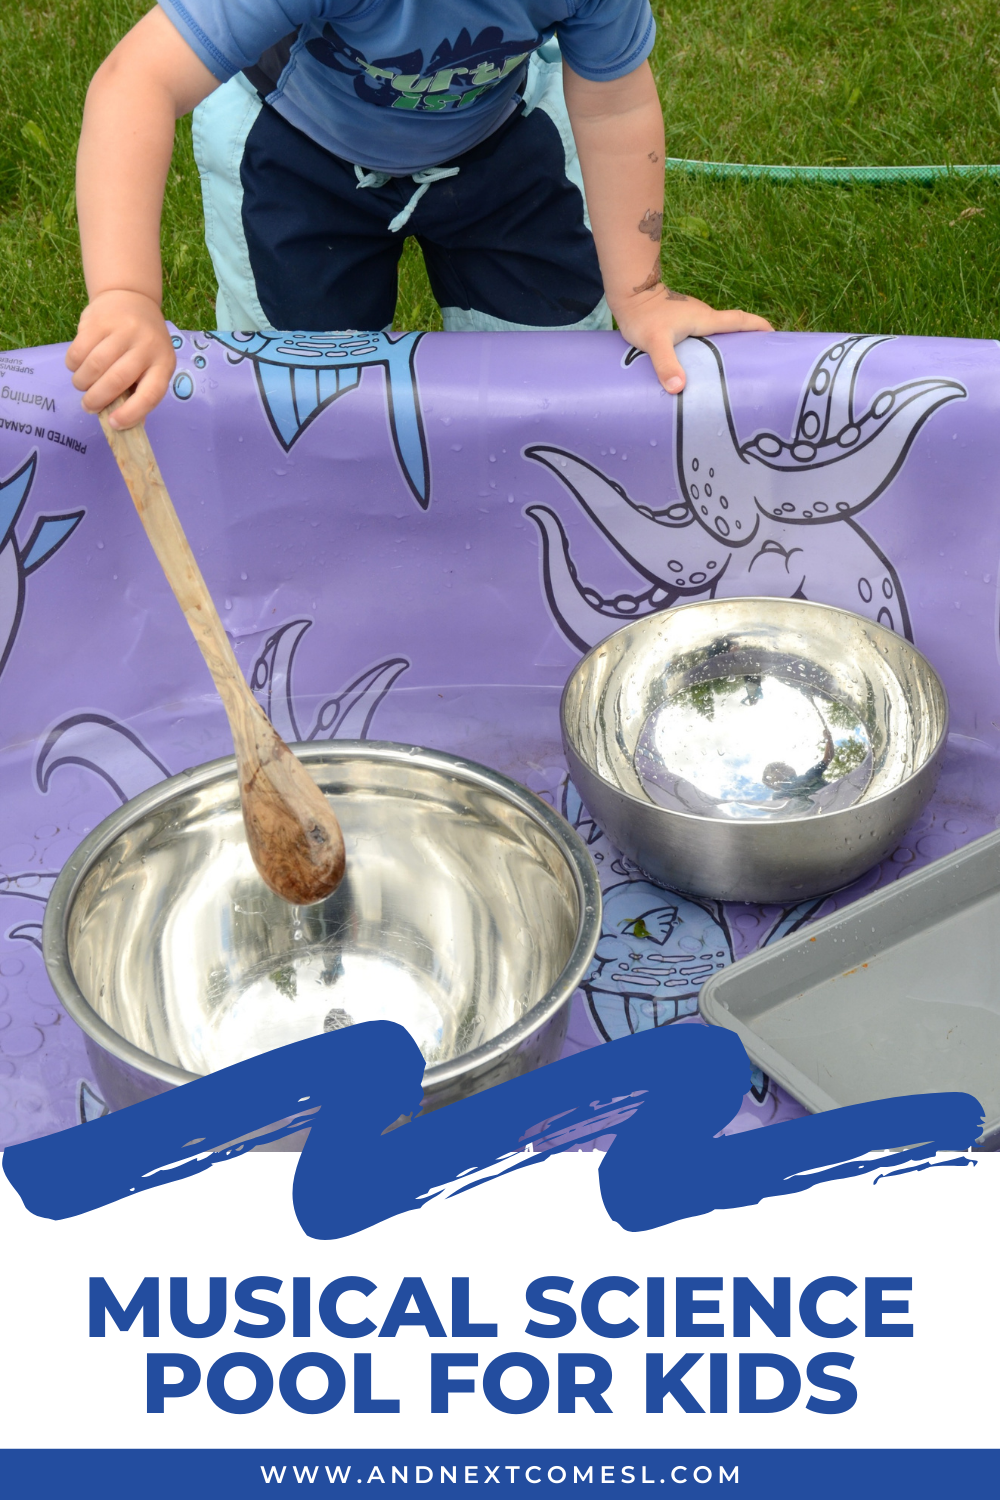 Your kids will love this musical science pool activity - it's such a fun outdoor music science experiment for toddlers and preschoolers!